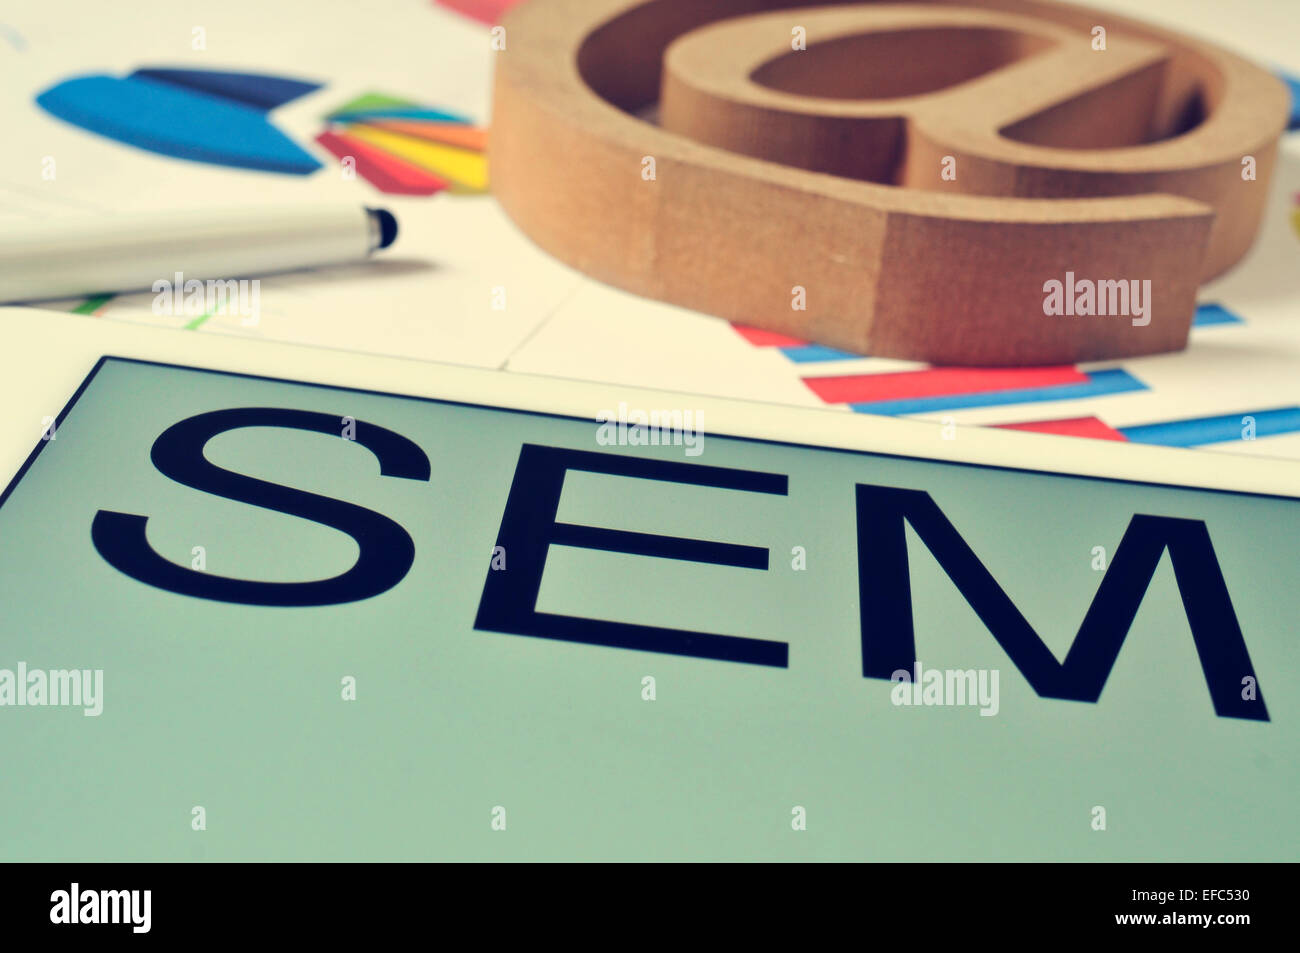 the text SEM, for Search Engine Marketing, in the screen of a tablet - Stock Image